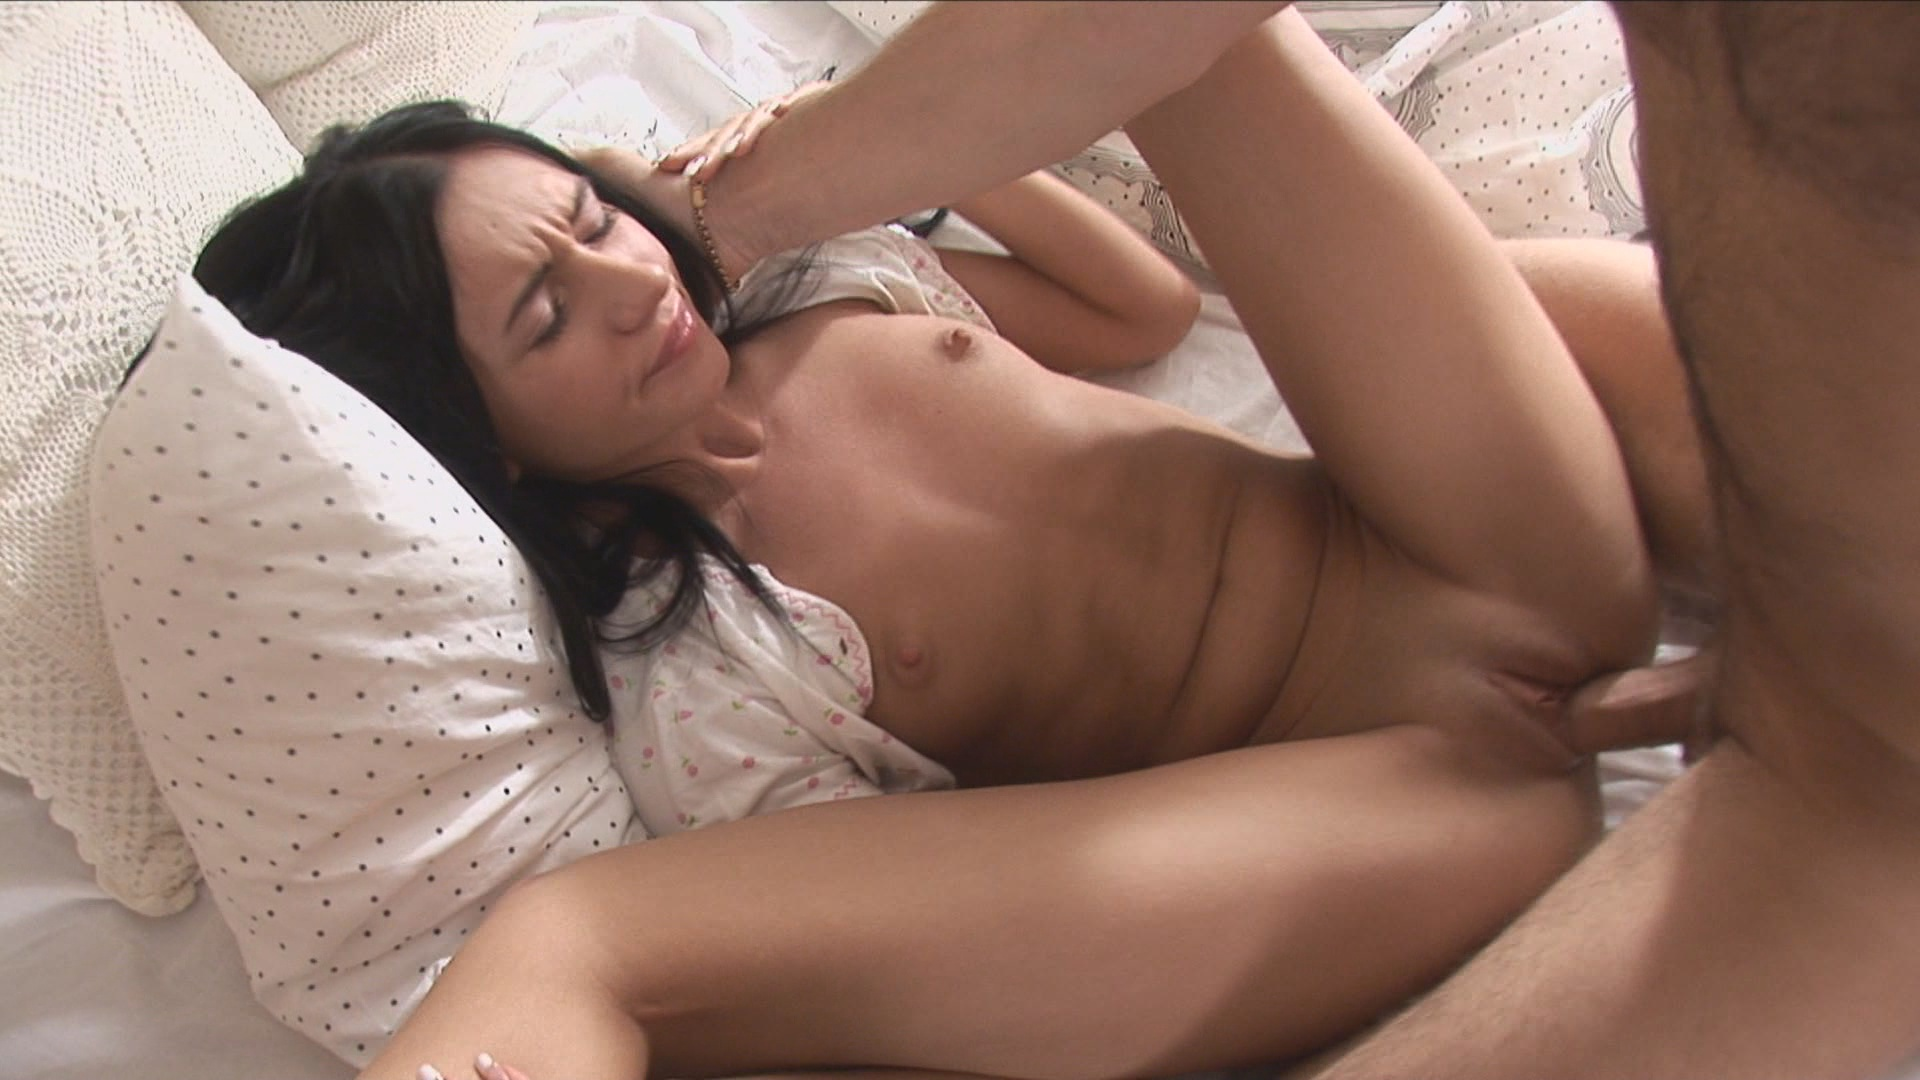 Pornstar sexy wife touching her sensitive